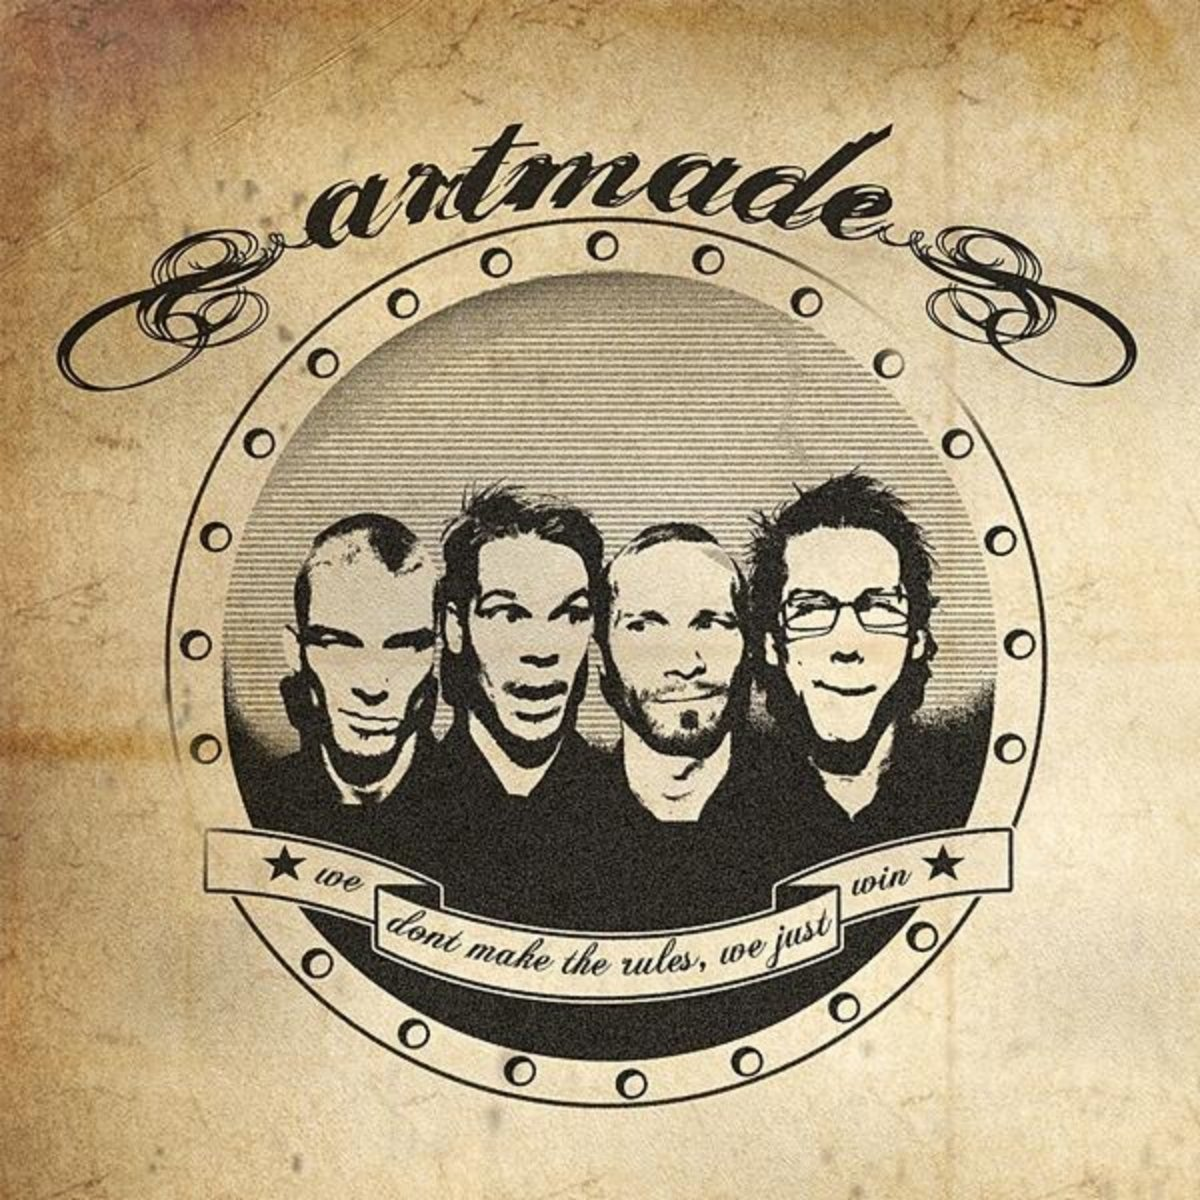 Artmade – We Don't Make The Rules, We Just Win (2006) [FLAC]